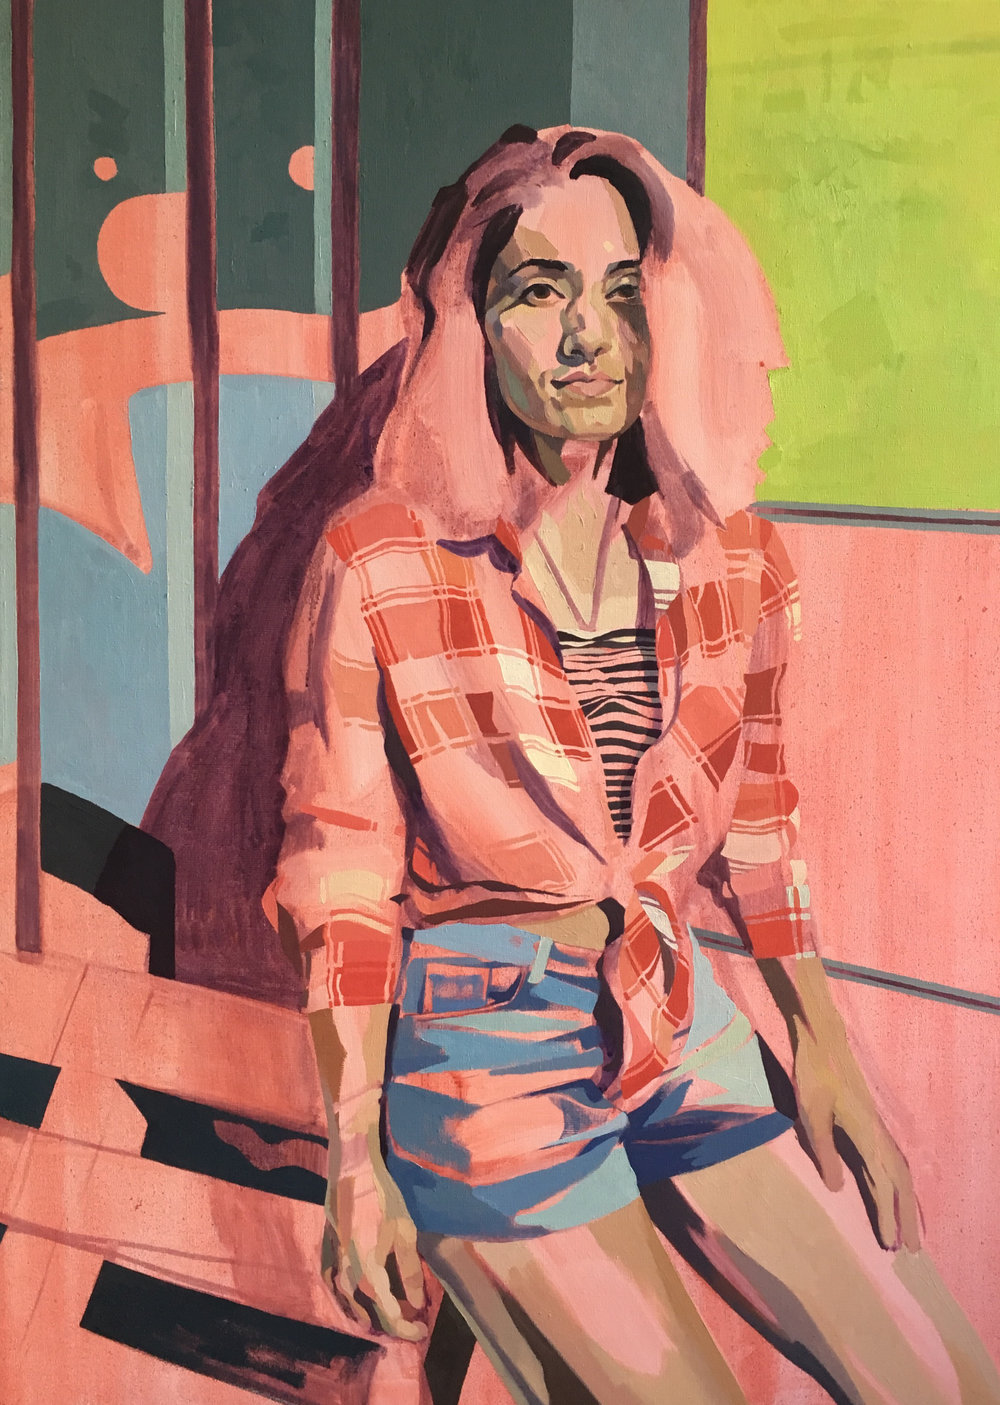 The Chequered Shirt, oil on canvas, 100 x 70 cm, 2016